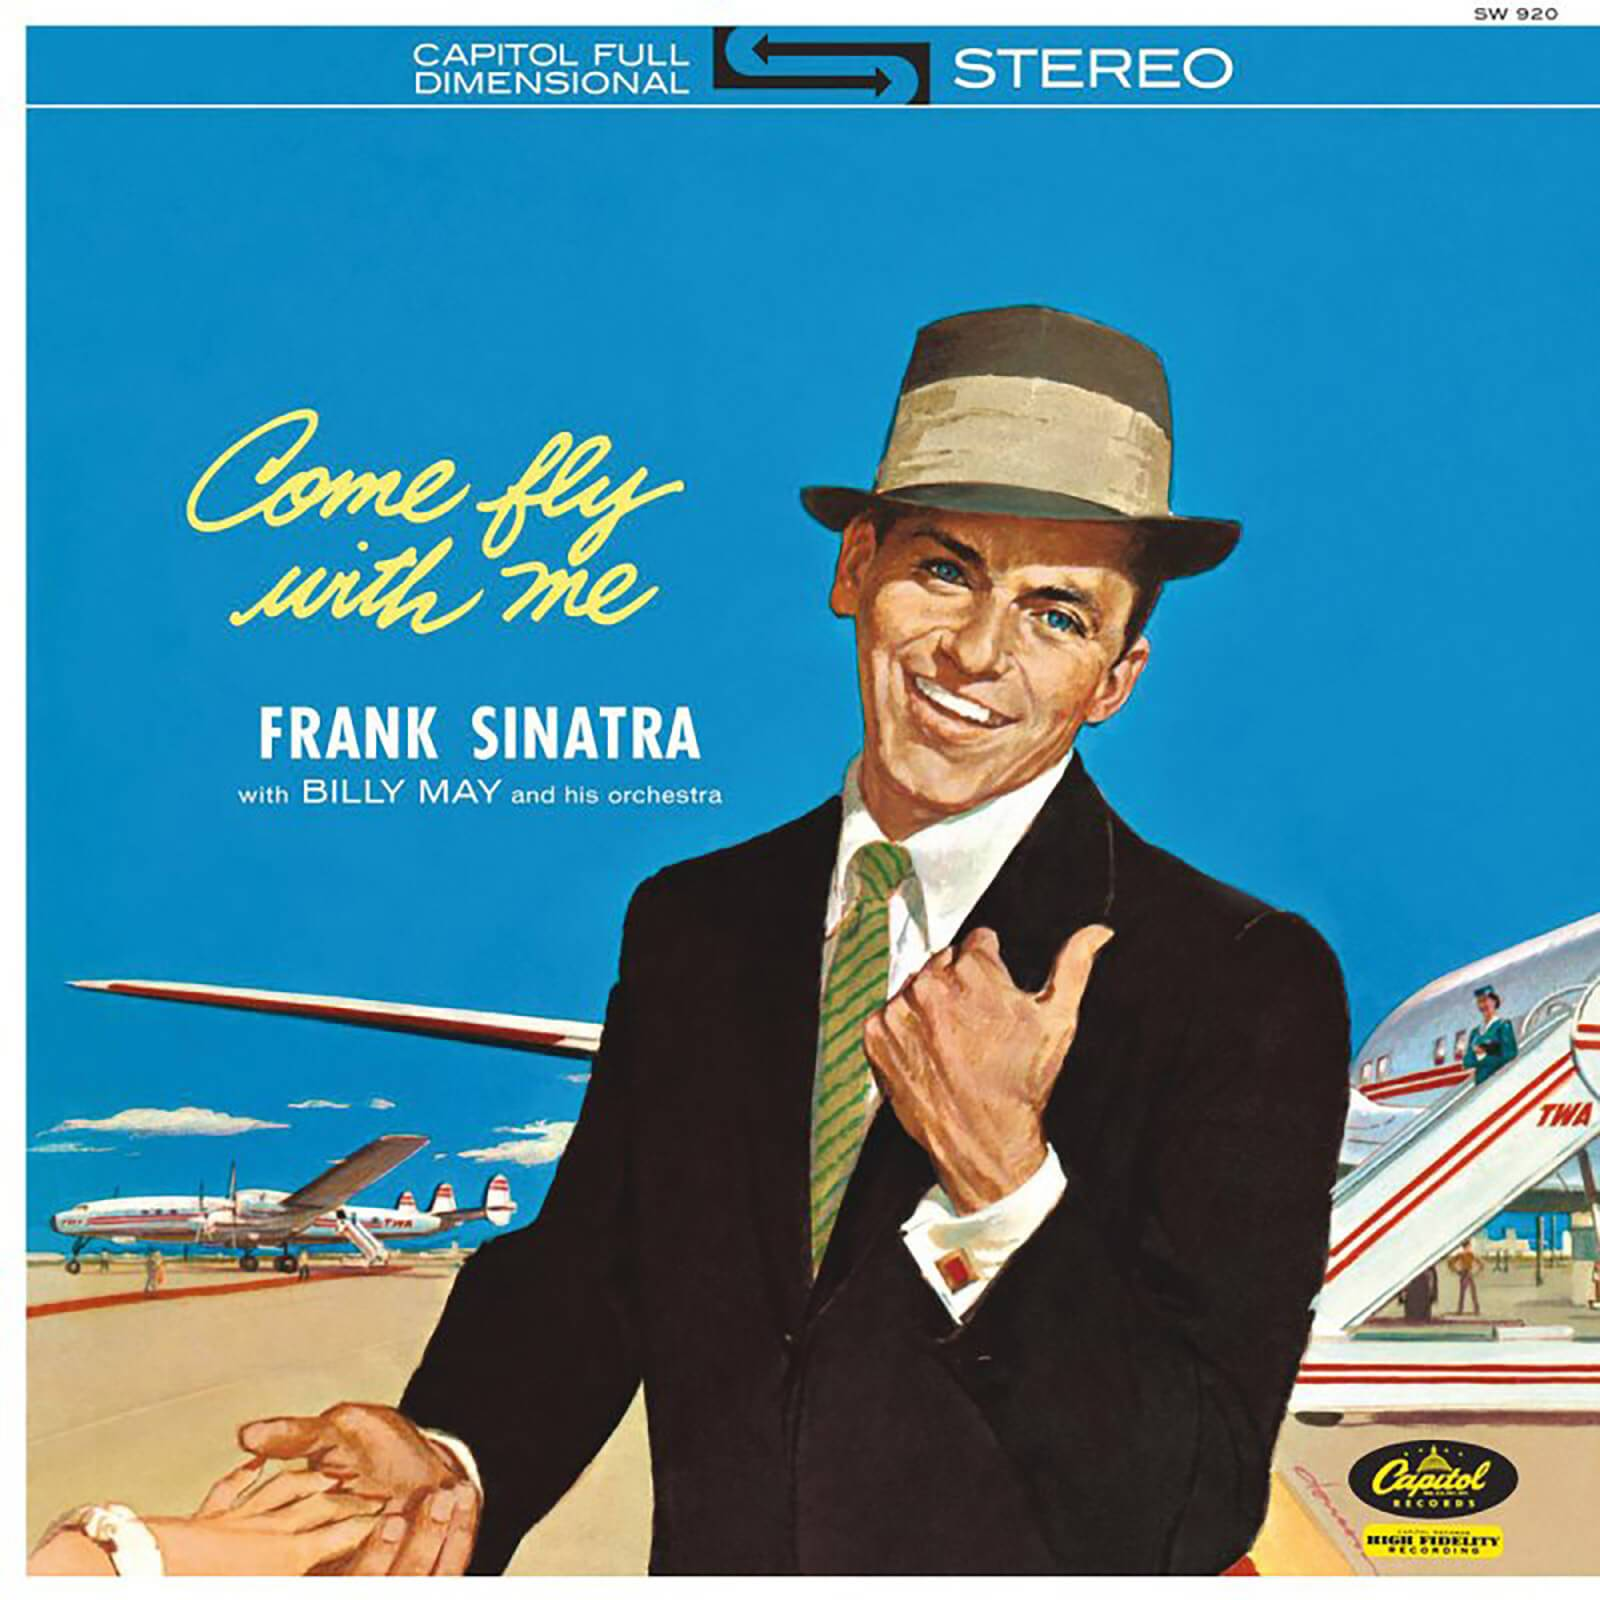 UMC - Capitol Frank Sinatra - Come Fly With Me 12 Inch LP